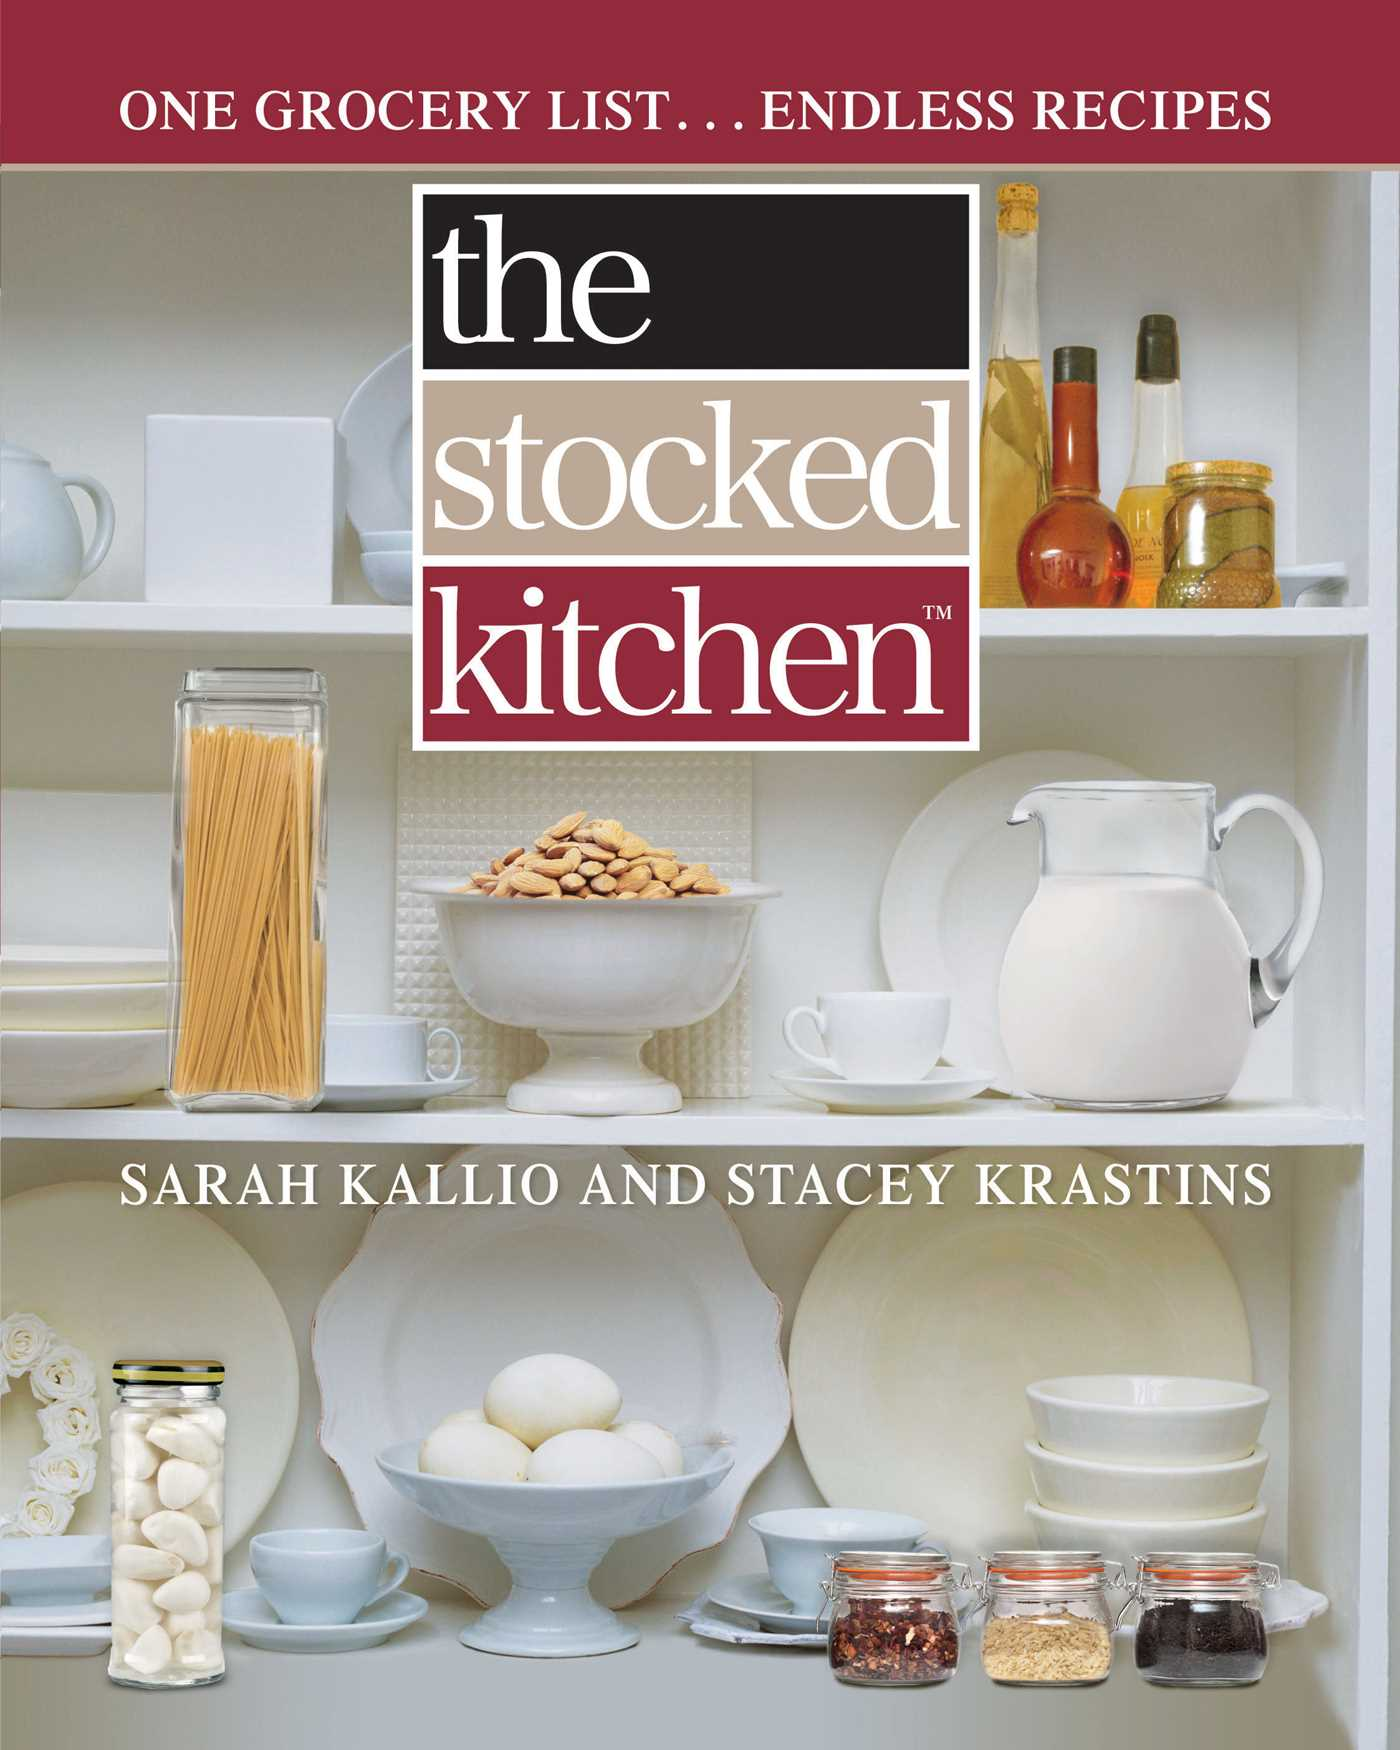 The stocked kitchen 9781451635379 hr